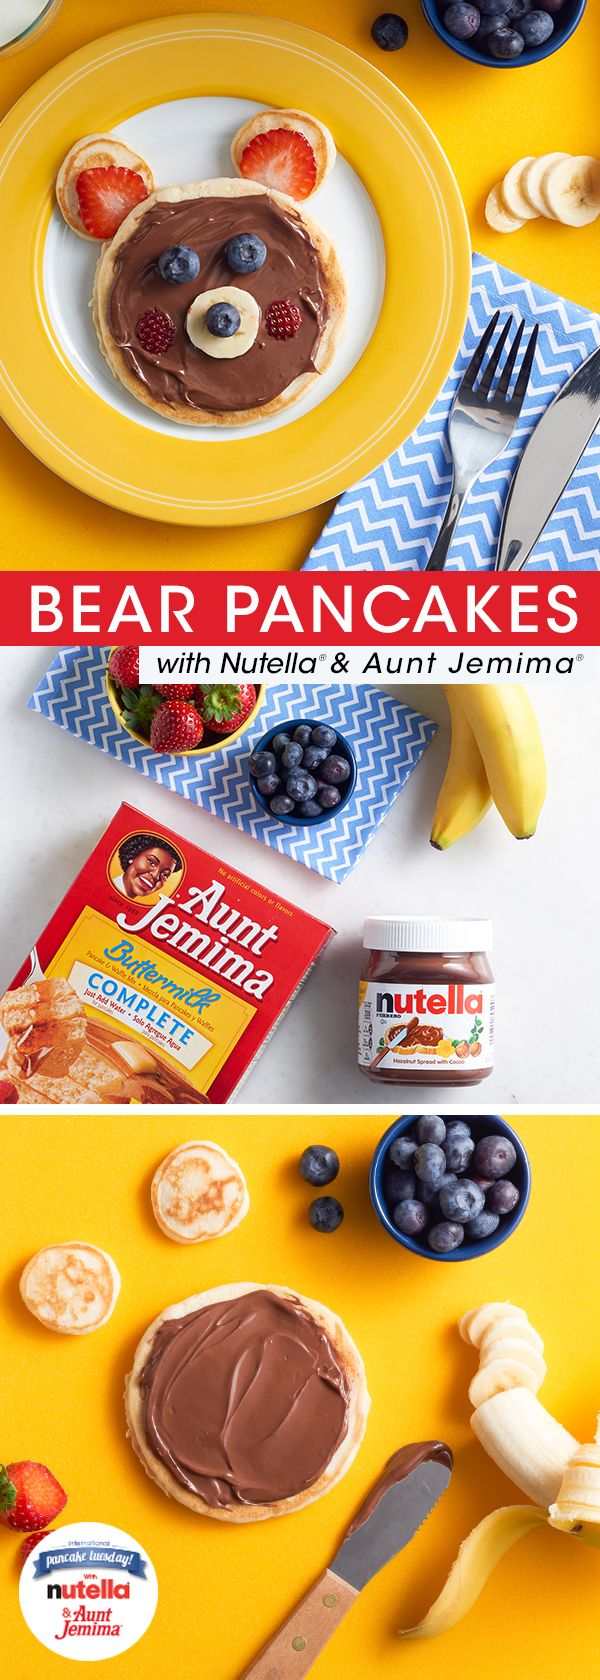 10 best pancake pairings with aunt jemima images on pinterest nix the stuffed bear this valentines day and serve this delicious one instead its super simple to make youll just need aunt jemima pancake batter ccuart Images